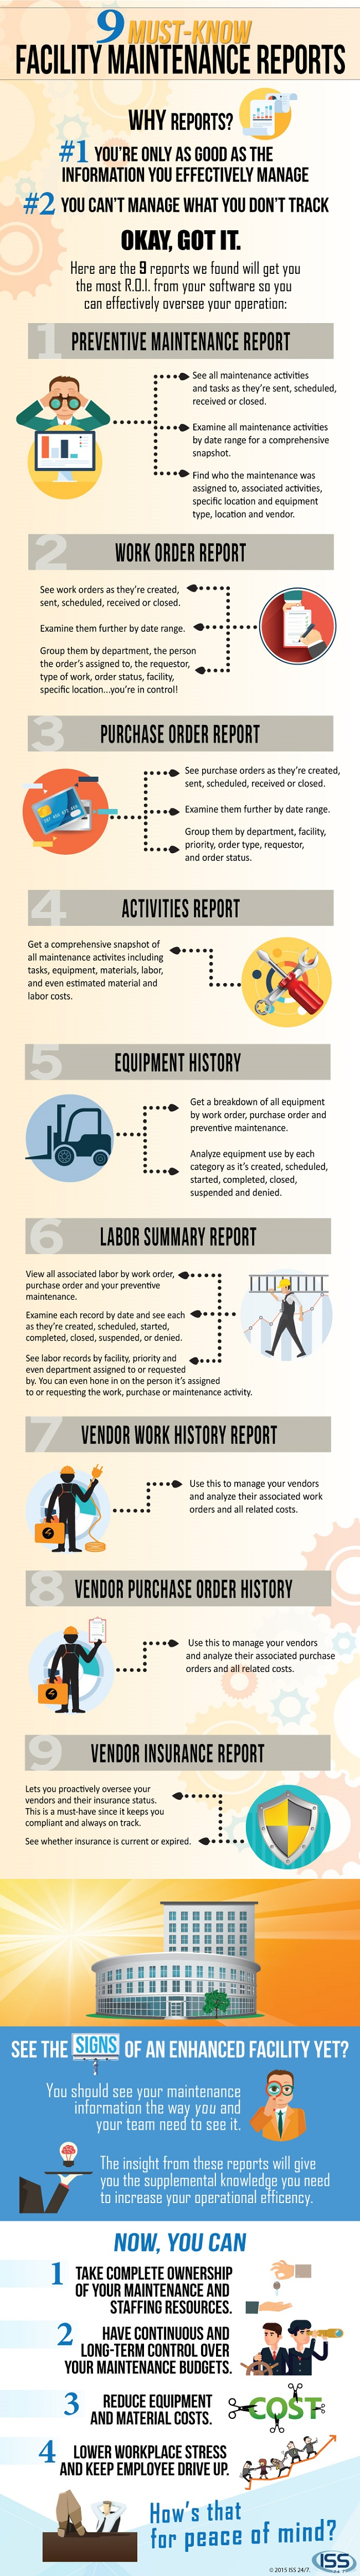 facility maintenance reports infographic